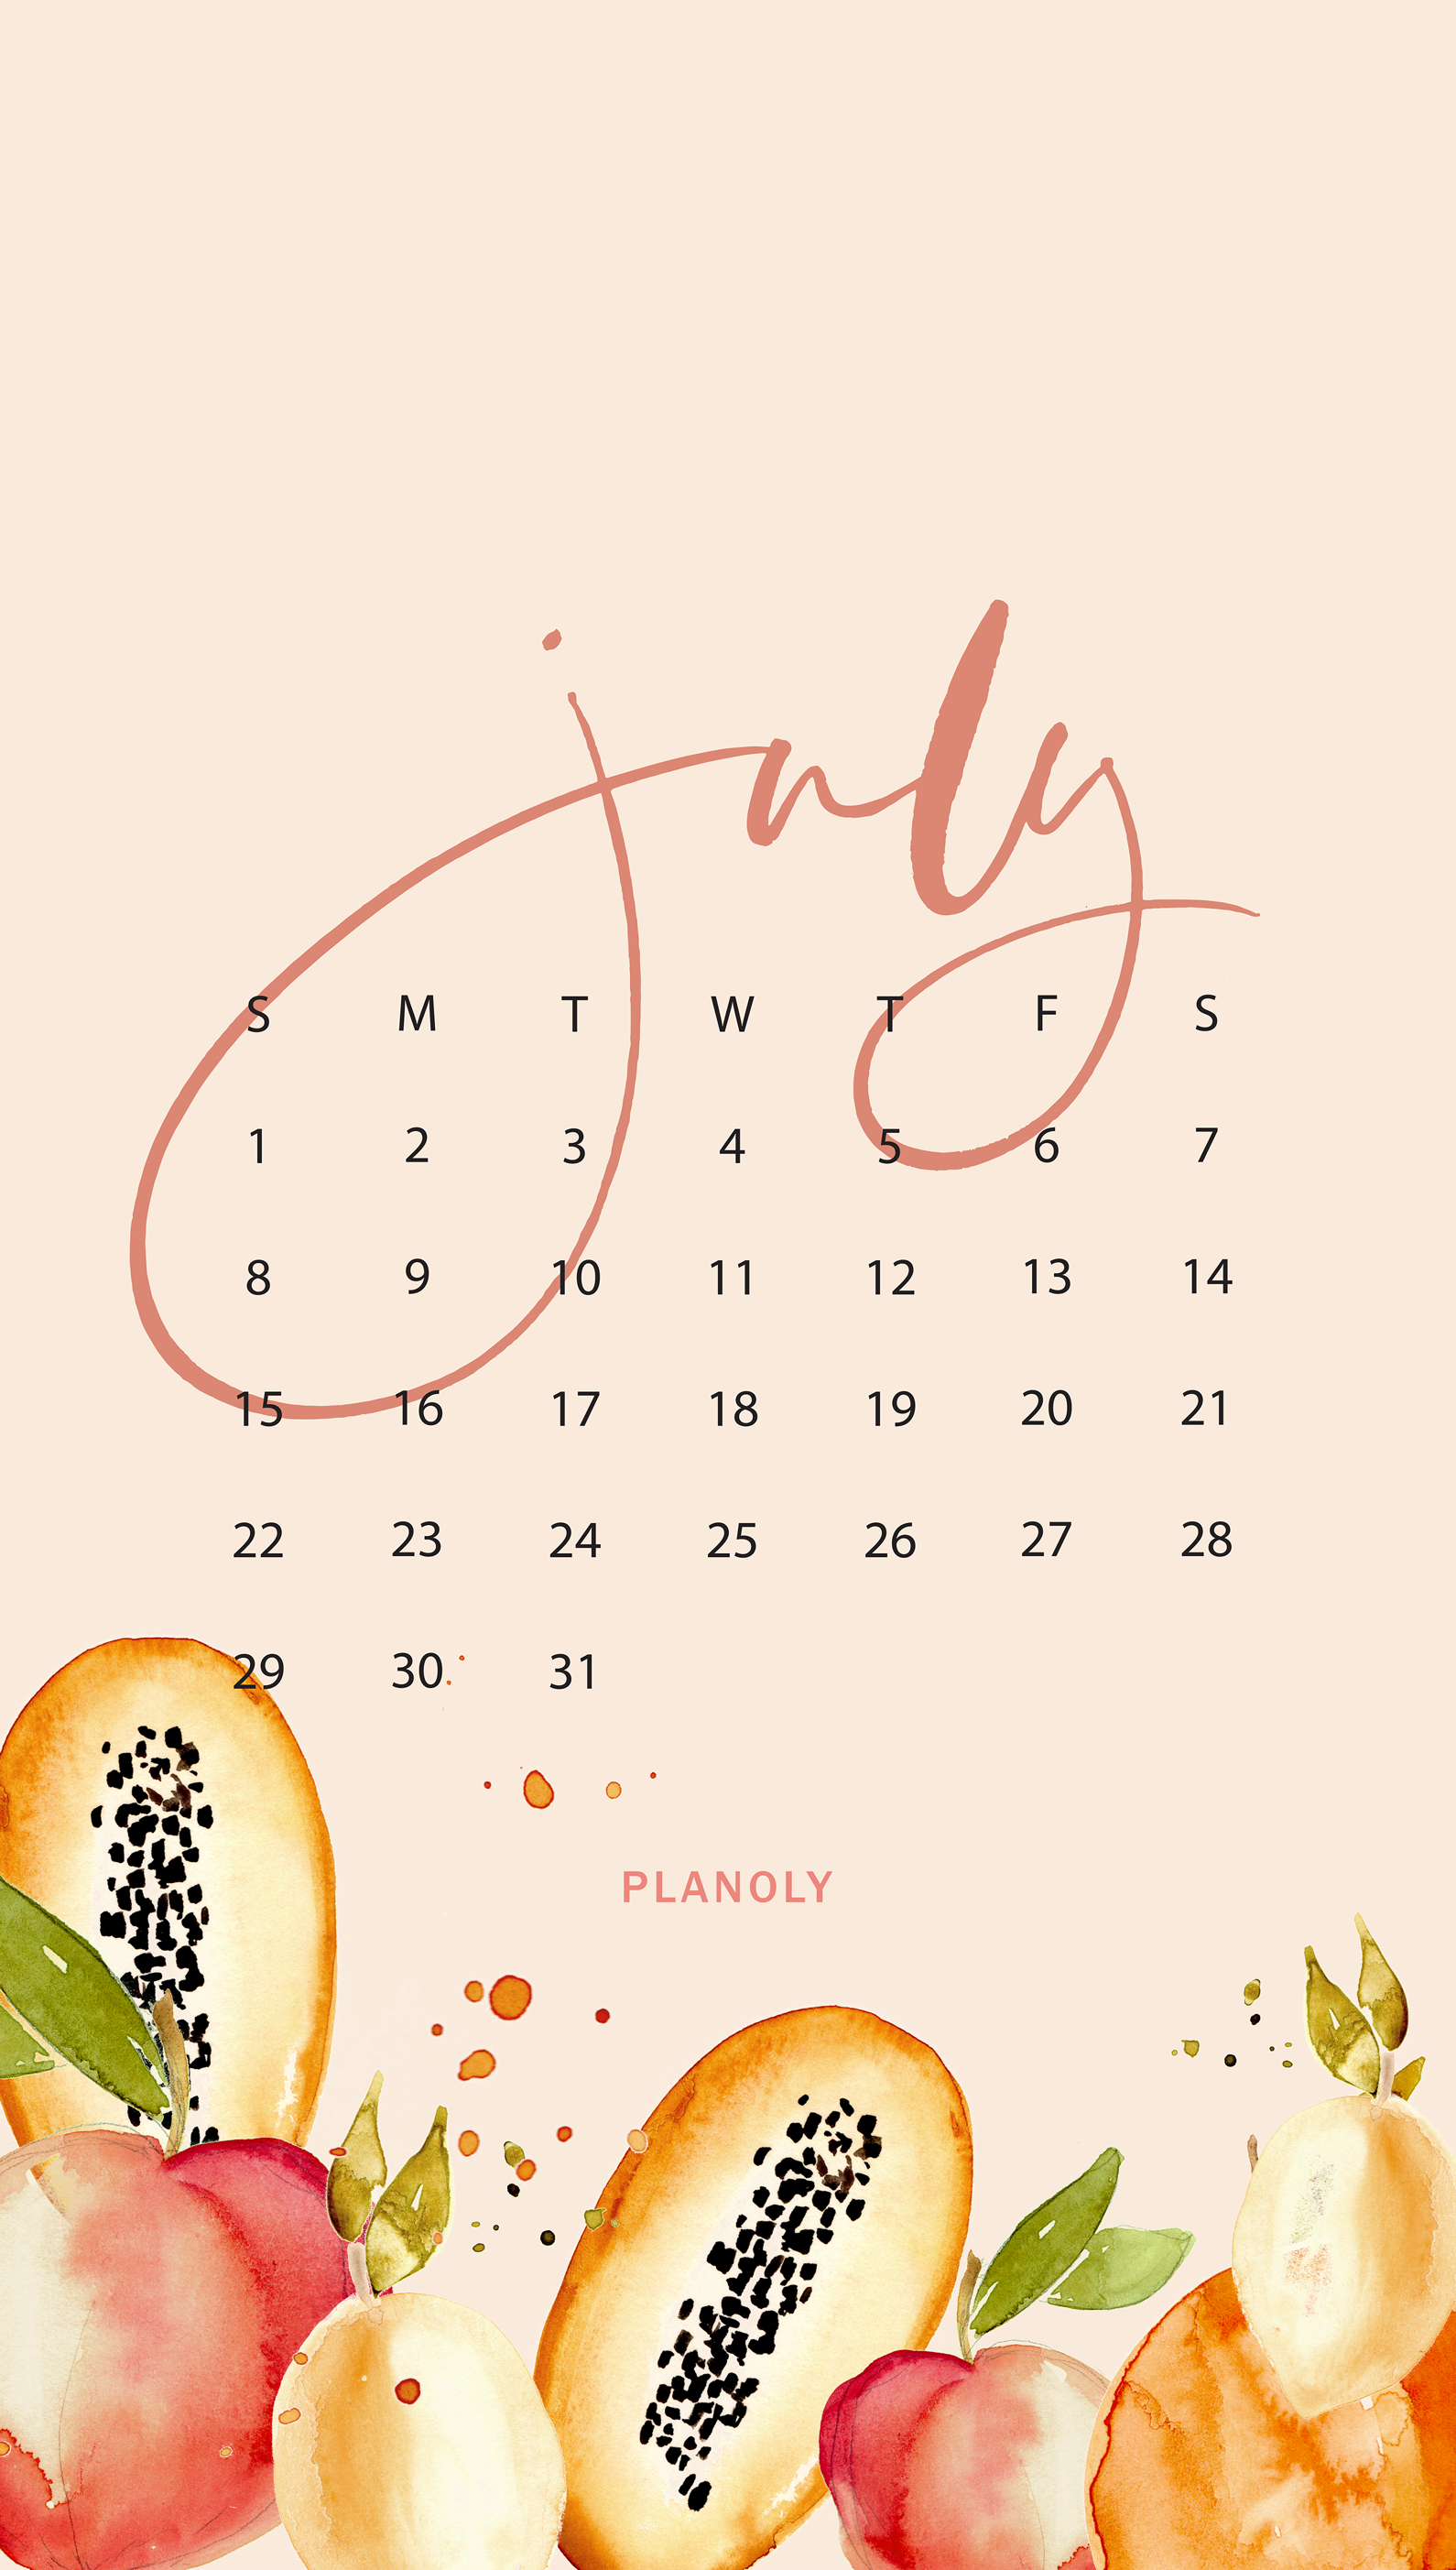 Calendar 2018 open clipart svg freeuse stock July 2018 Content Calendar - Planoly svg freeuse stock